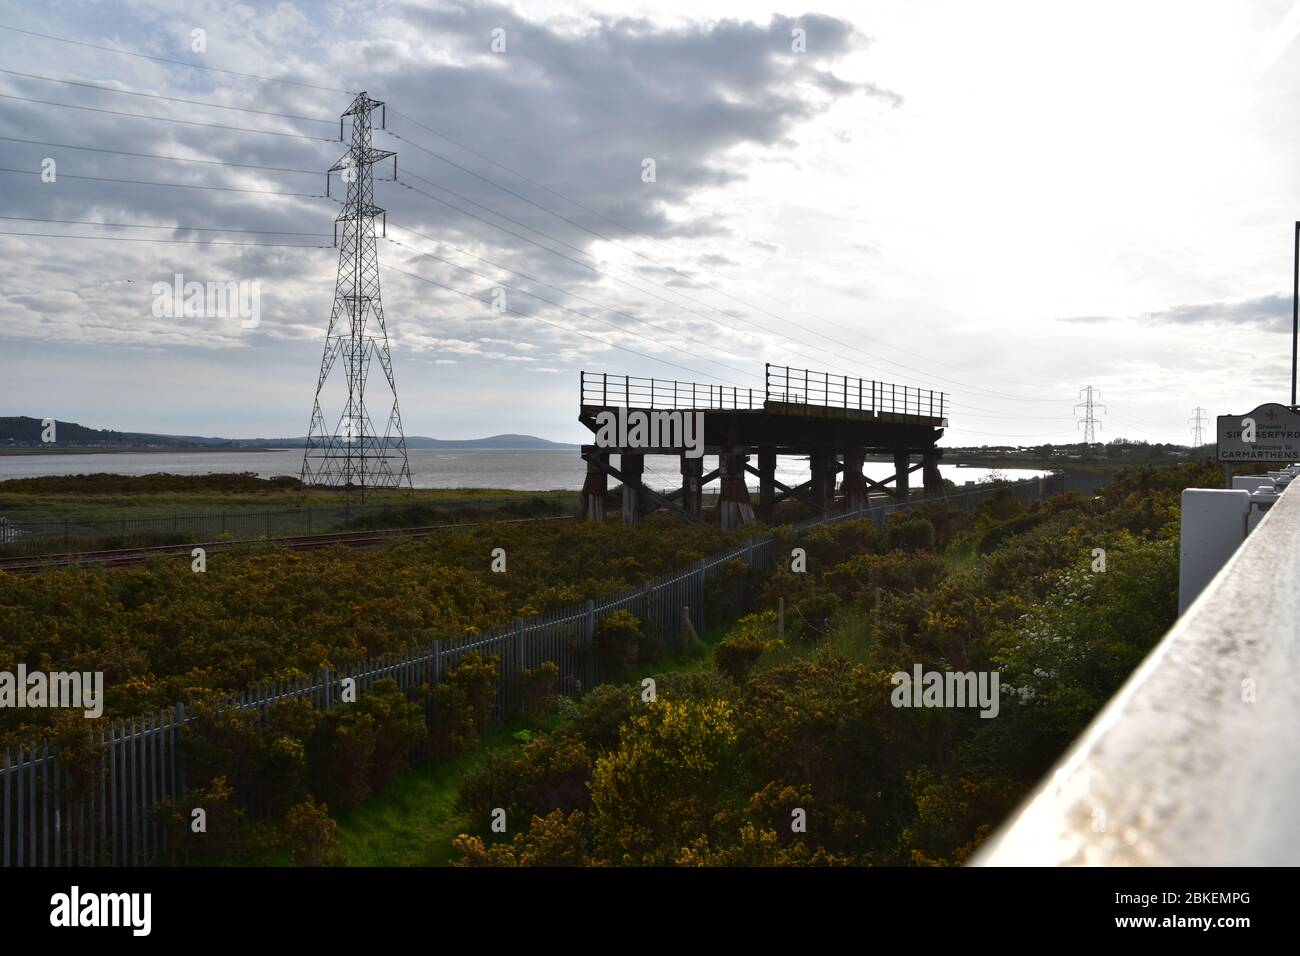 The remaining part of the Old Loughor Bridge in Llanelli, Wales. Photo taken on the 6th of May 2019 Stock Photo